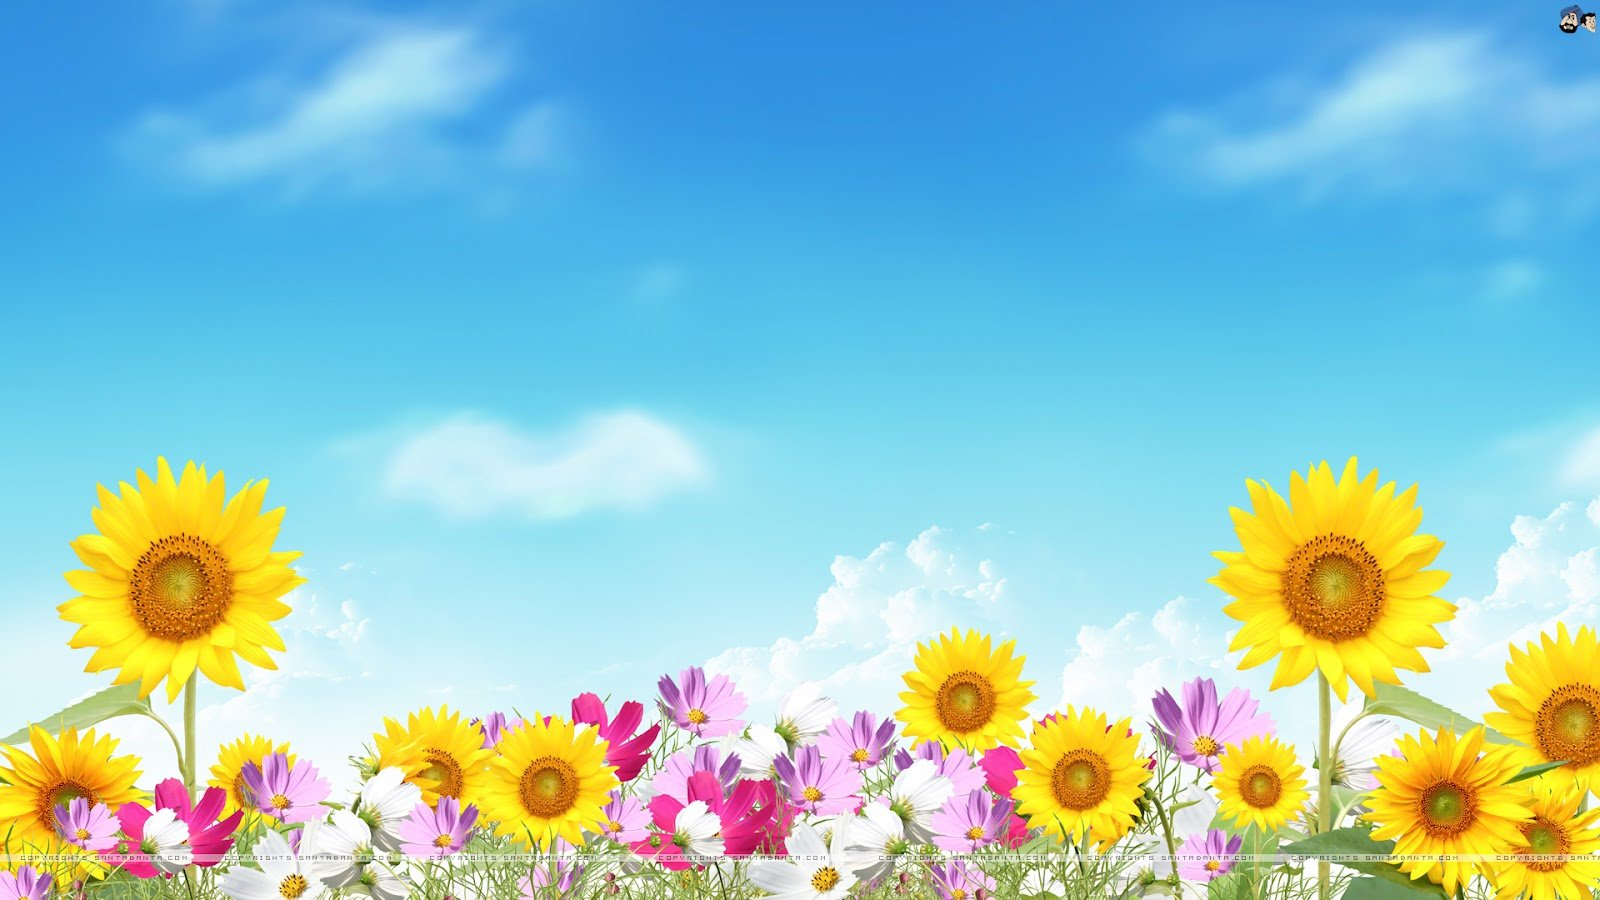 Summer Wallpapers for Desktop 1600x900